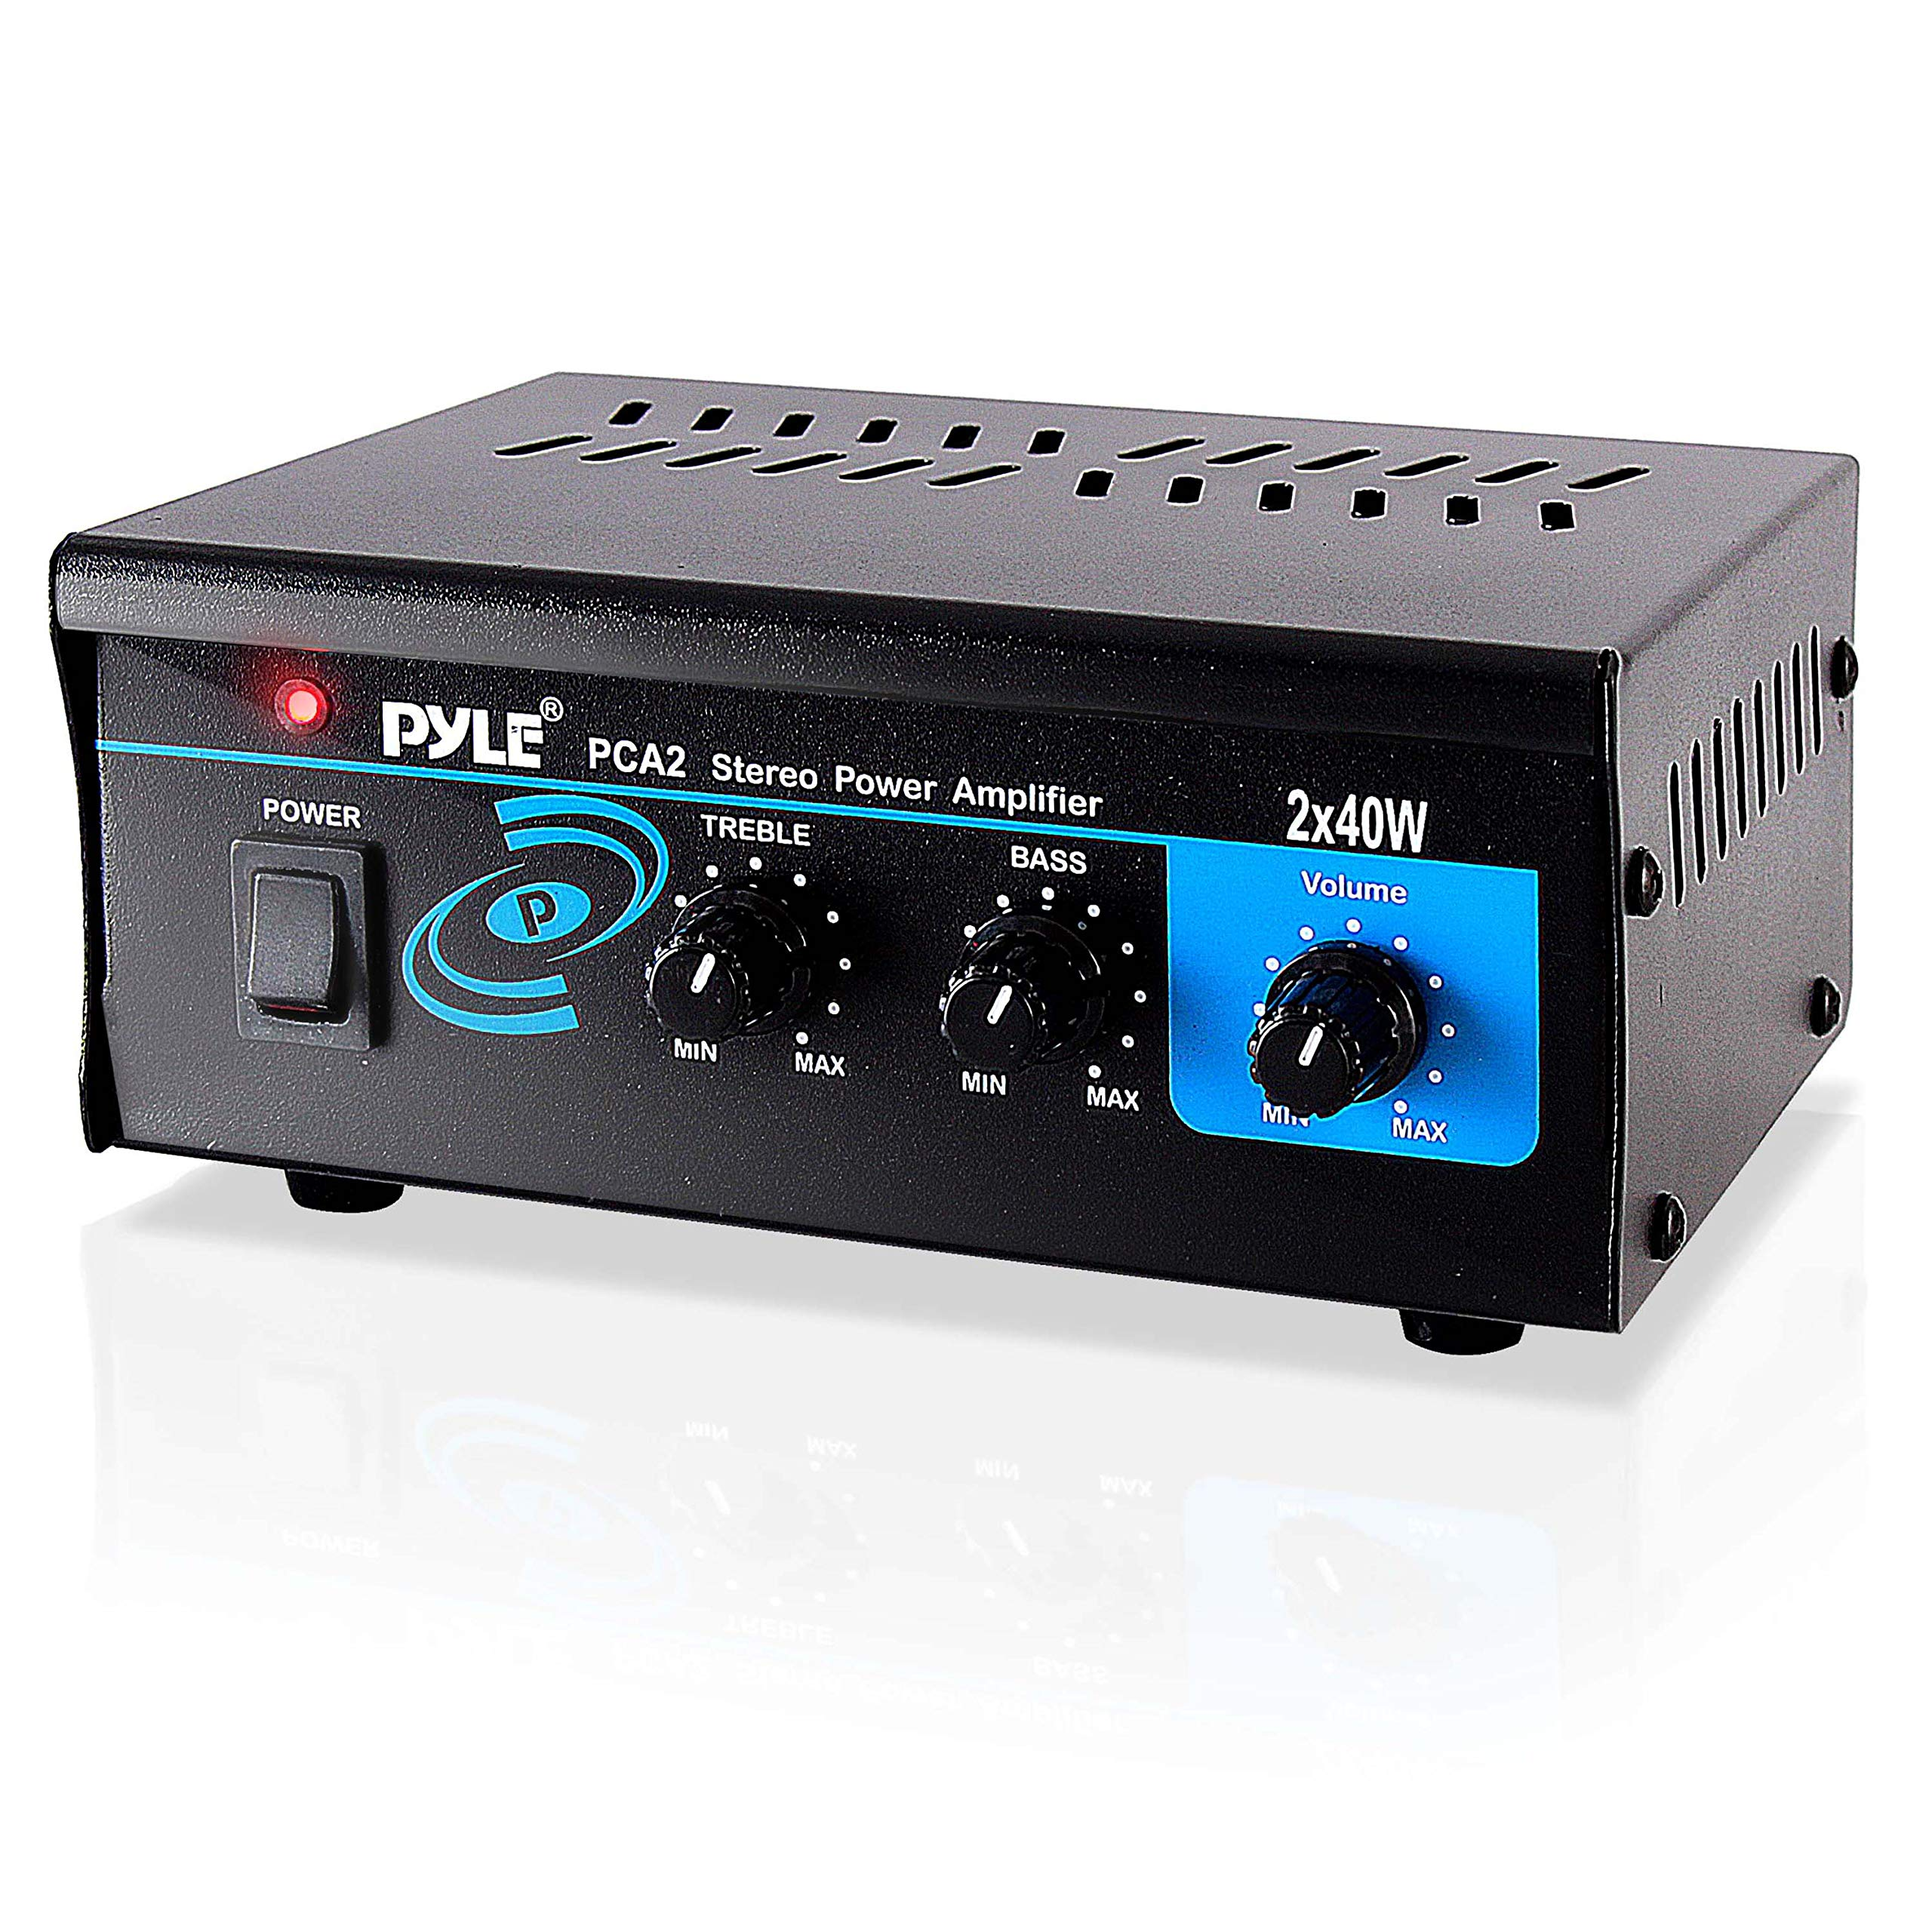 Home Audio Power Amplifier System - 2X40W Mini Dual Channel Sound Stereo Receiver Box w/LED - for Amplified Speakers, CD Player, Theater via 3.5mm RCA - for Studio, Home Use - Pyle PCA2 by Pyle